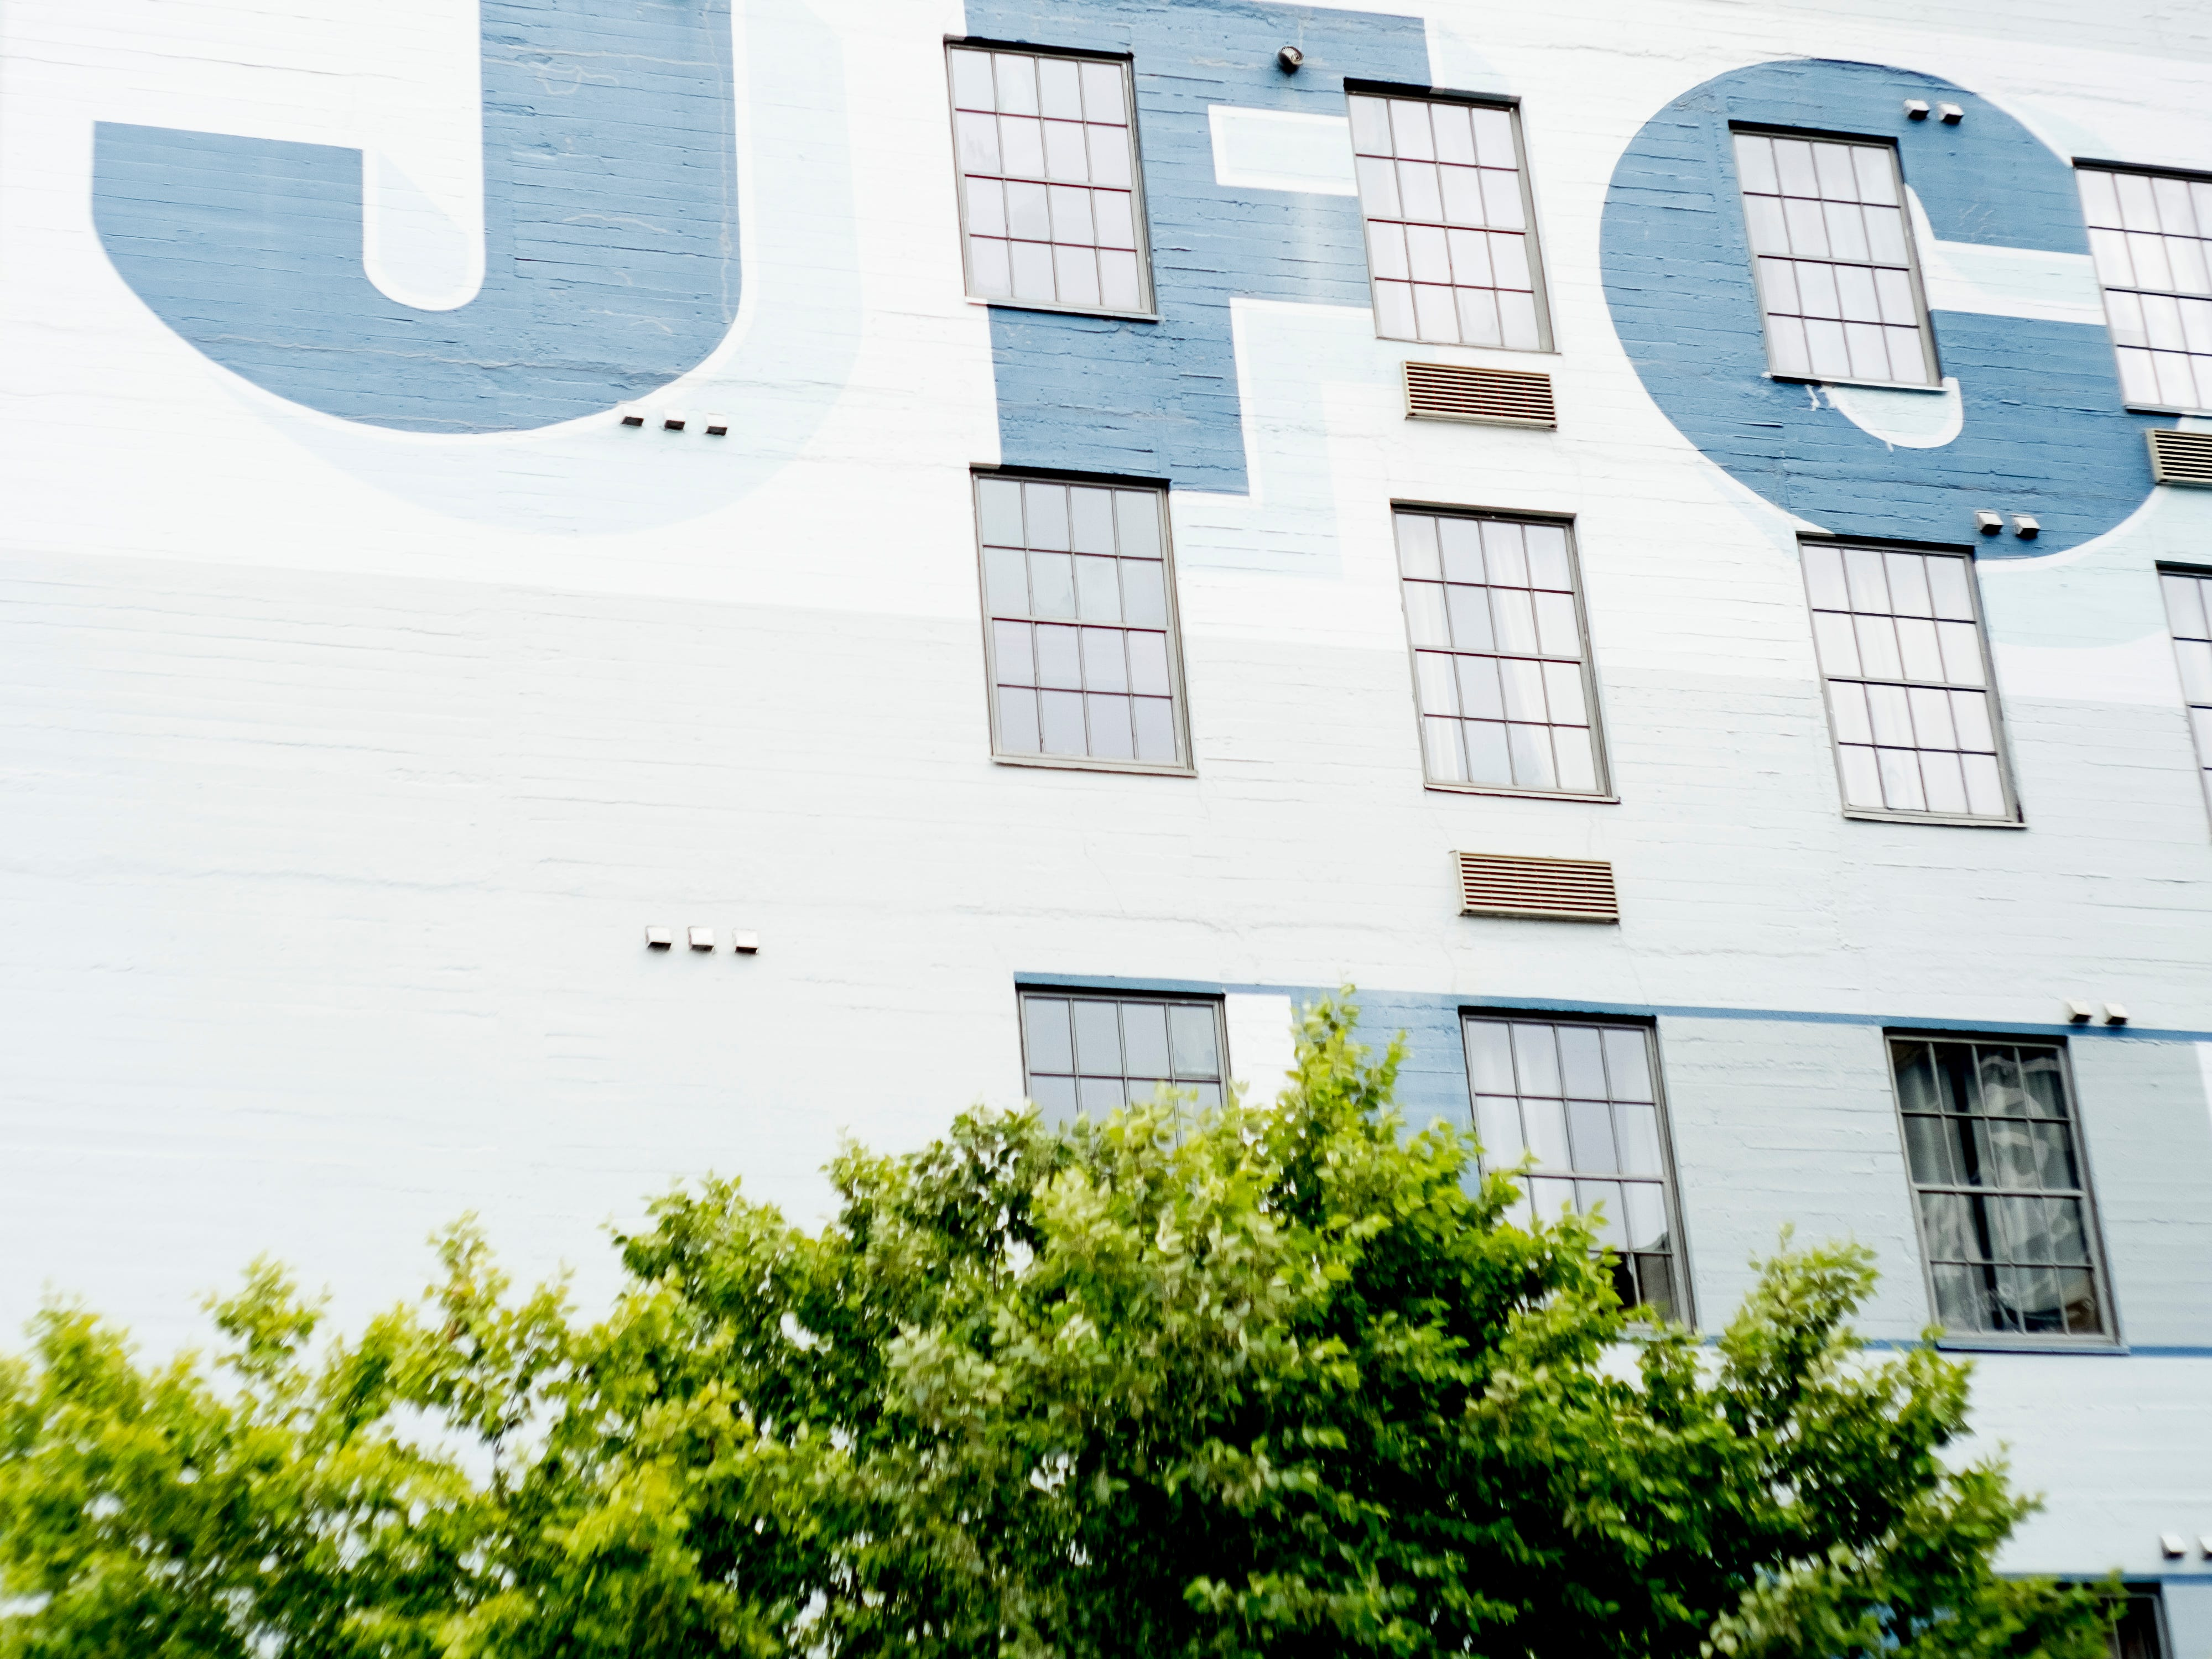 JFG Coffee lofts in Old City in downtown Knoxville, Tennessee on Saturday, August 18, 2018.